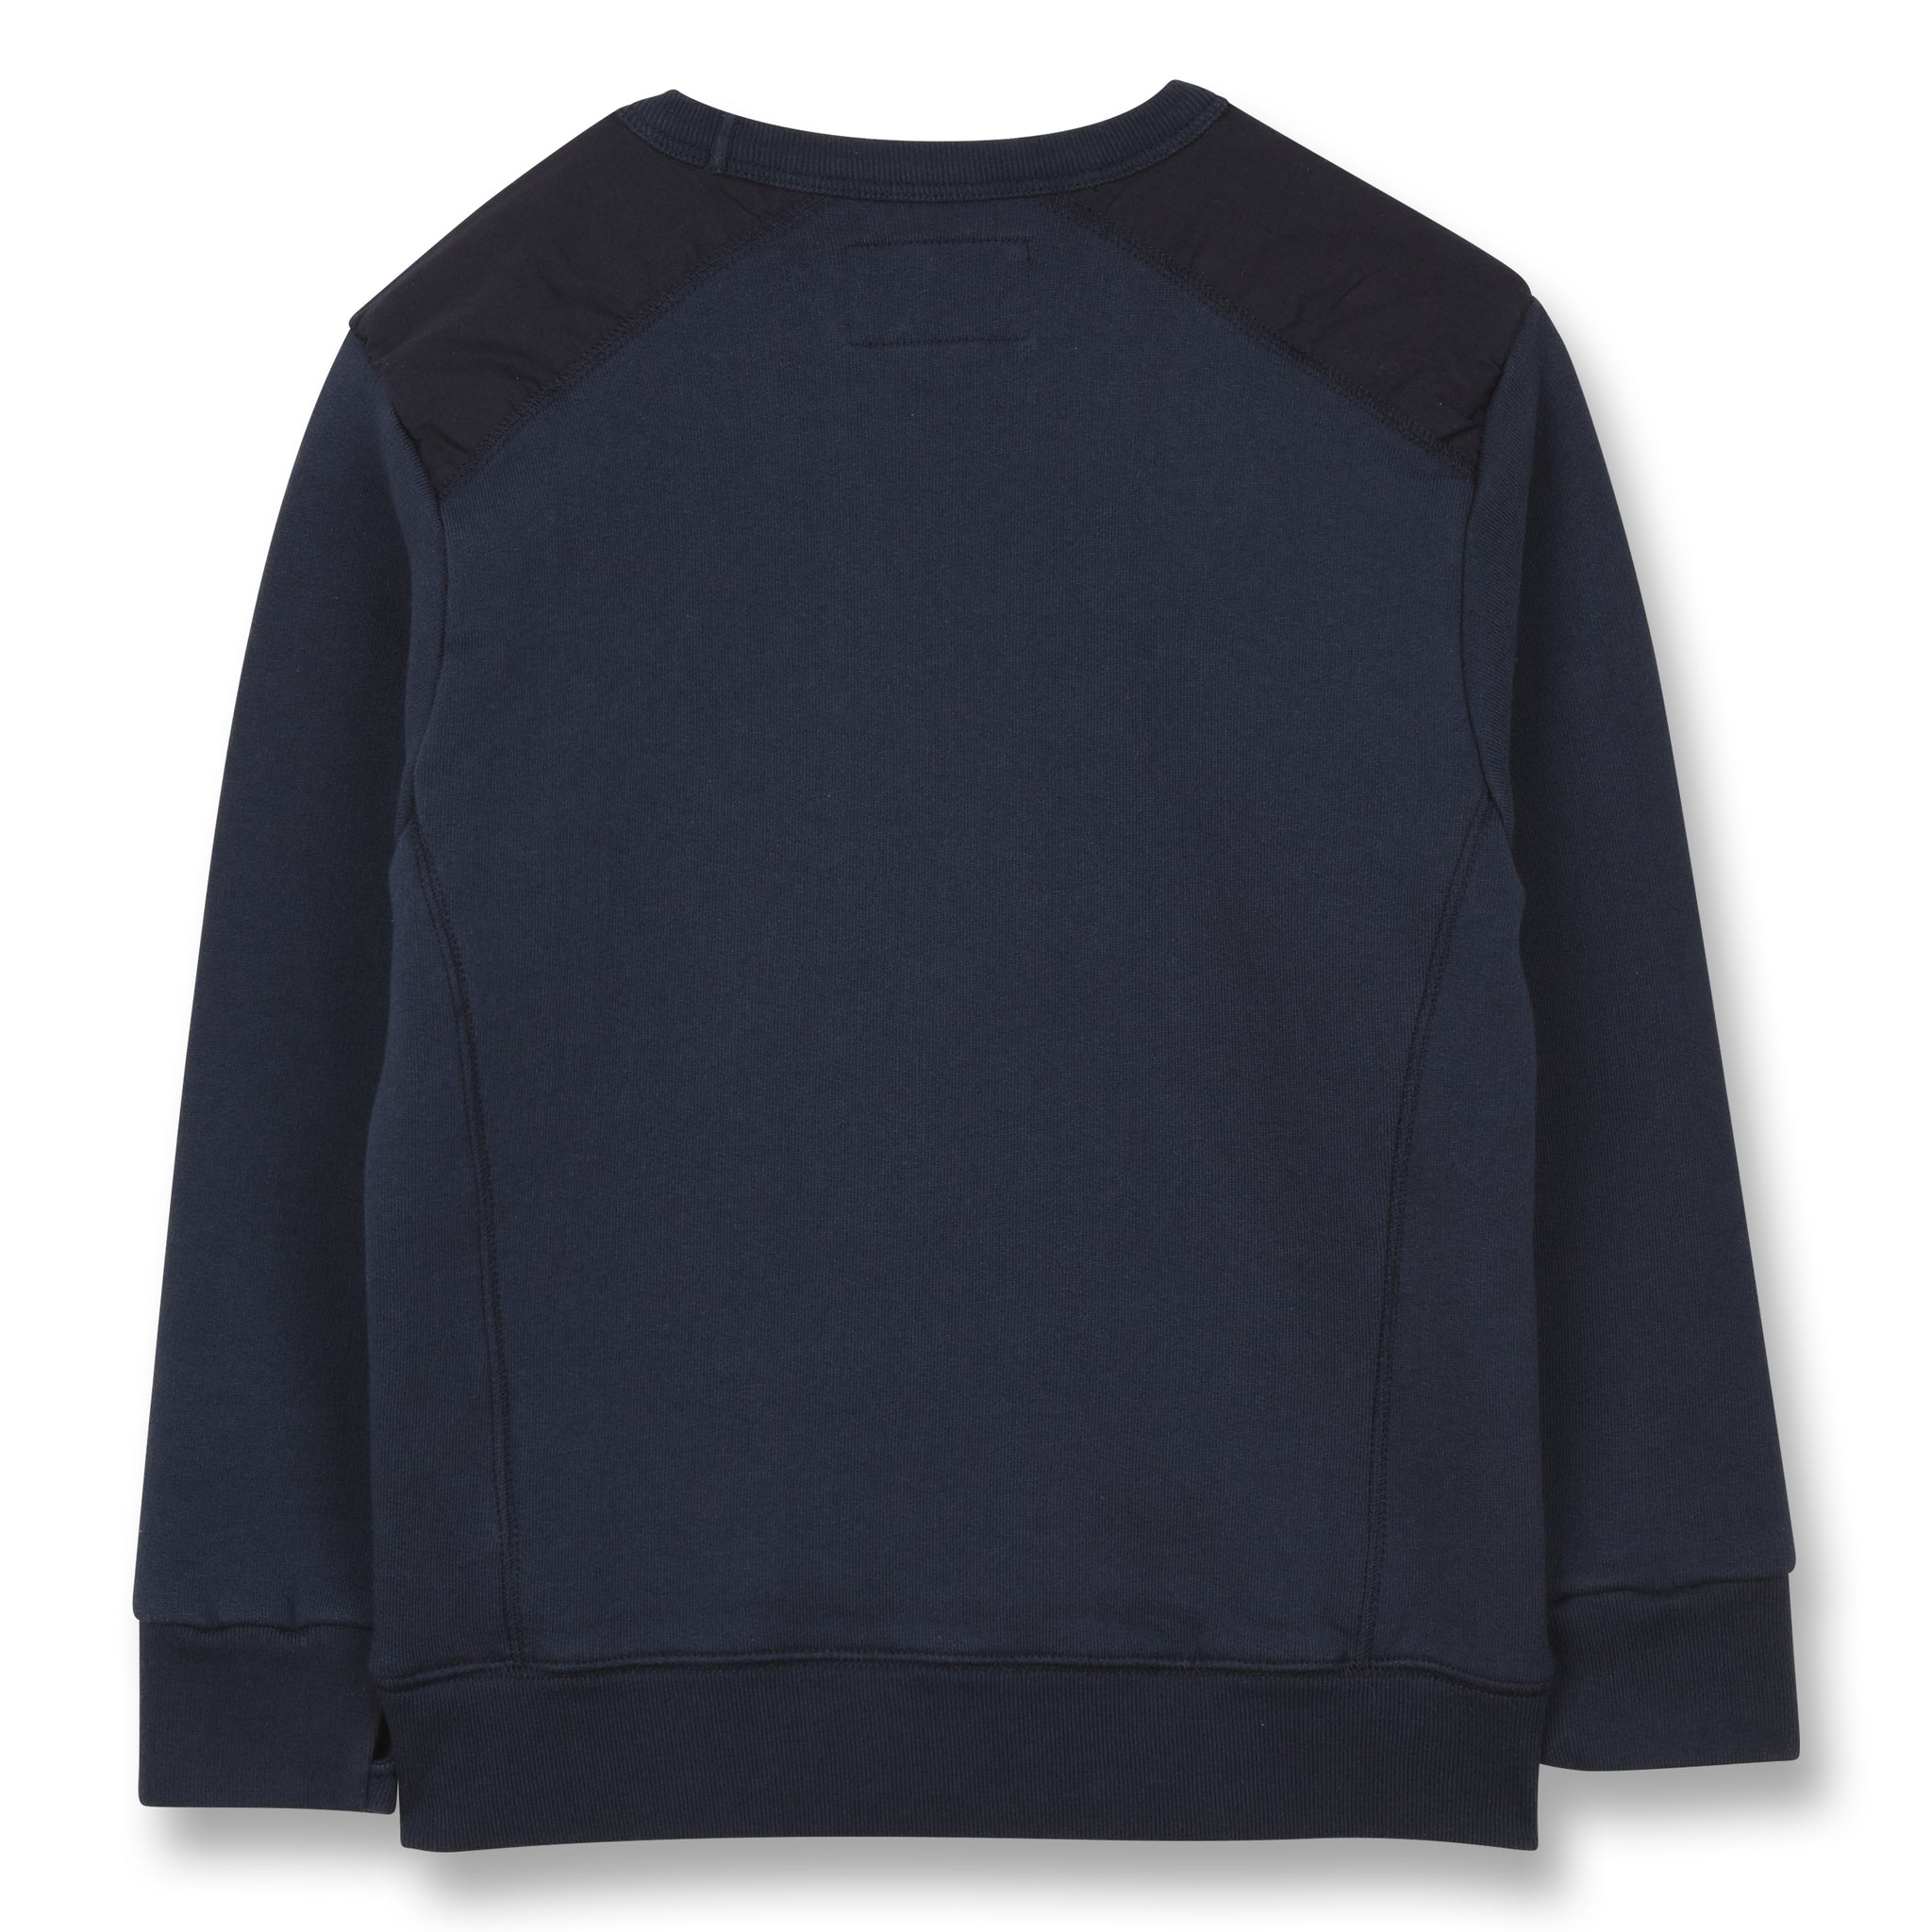 BRIAN Sailor Blue Flags - Crew Neck Sweatshirt 2